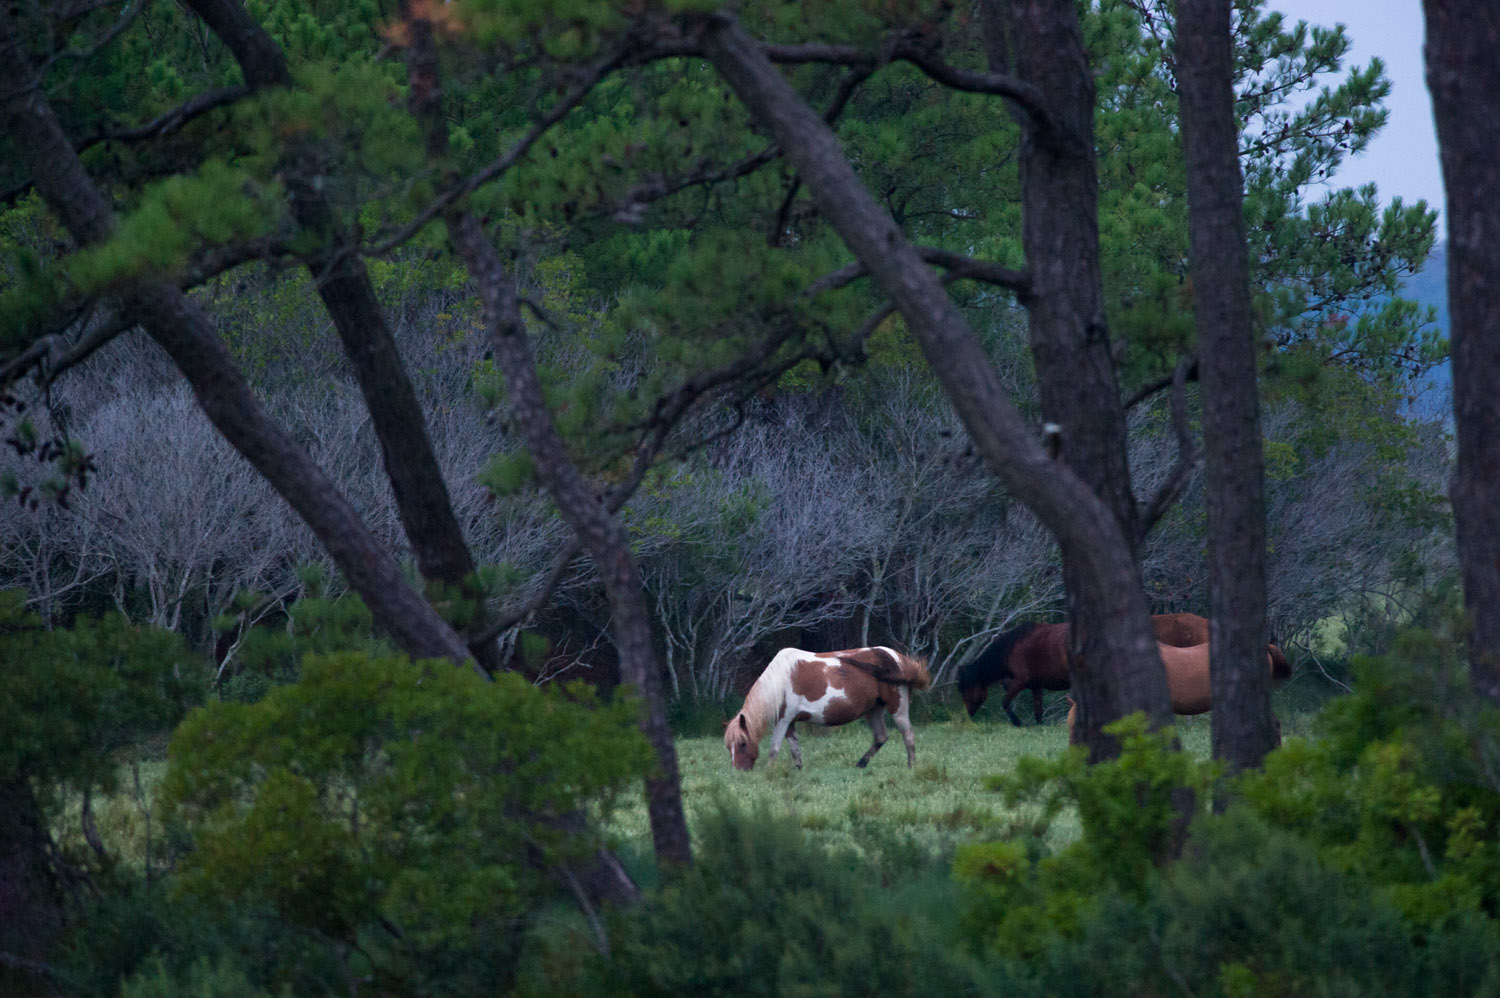 A n early morning trip with my father revealed these ponies grazing before the sun even came up.